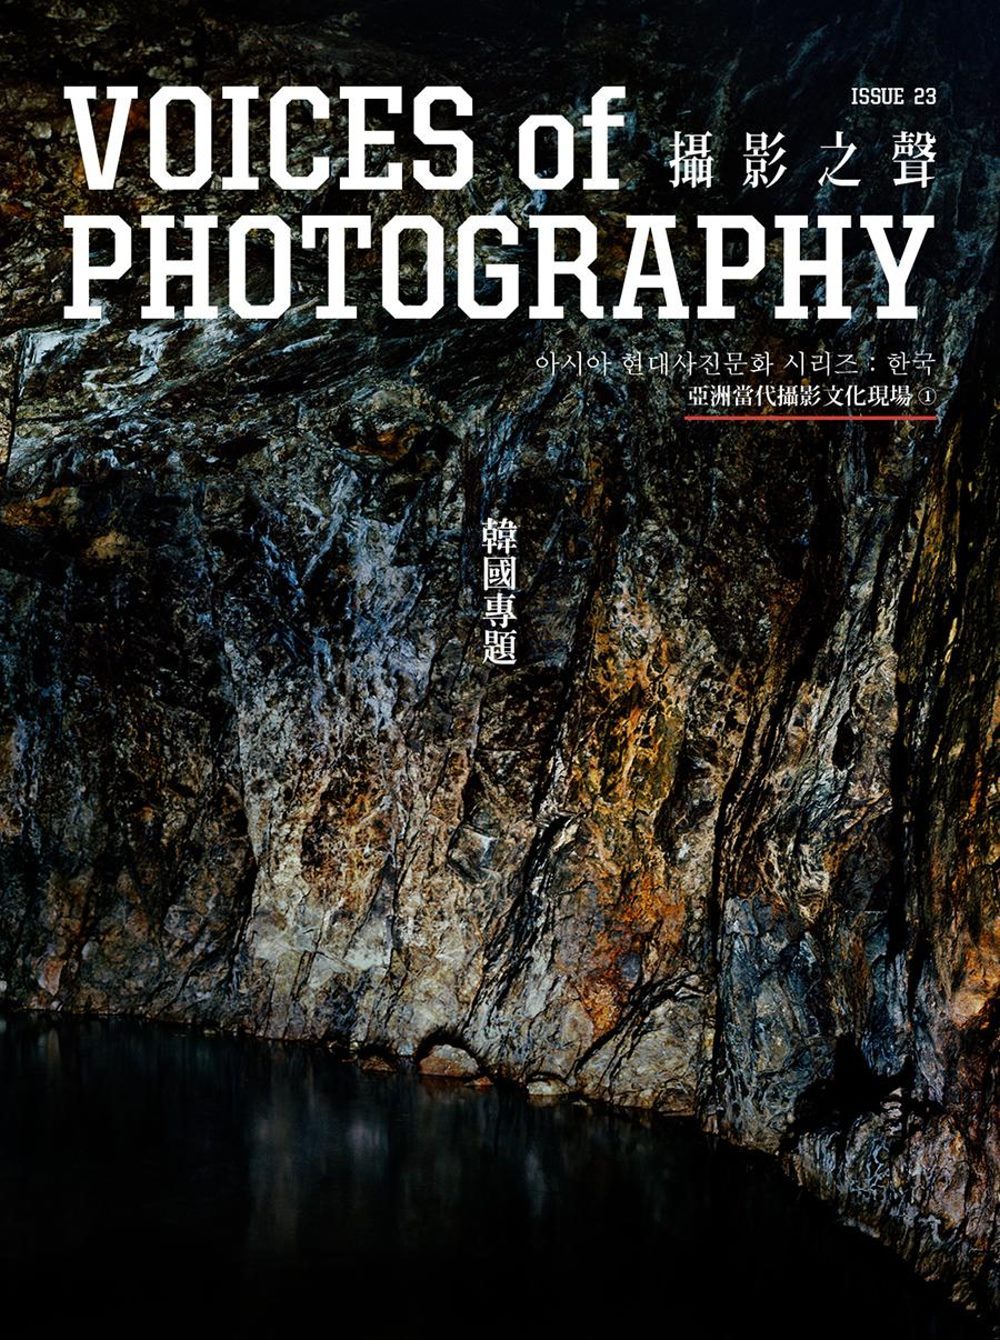 Voices of Photography - 攝影之聲 2018第23期